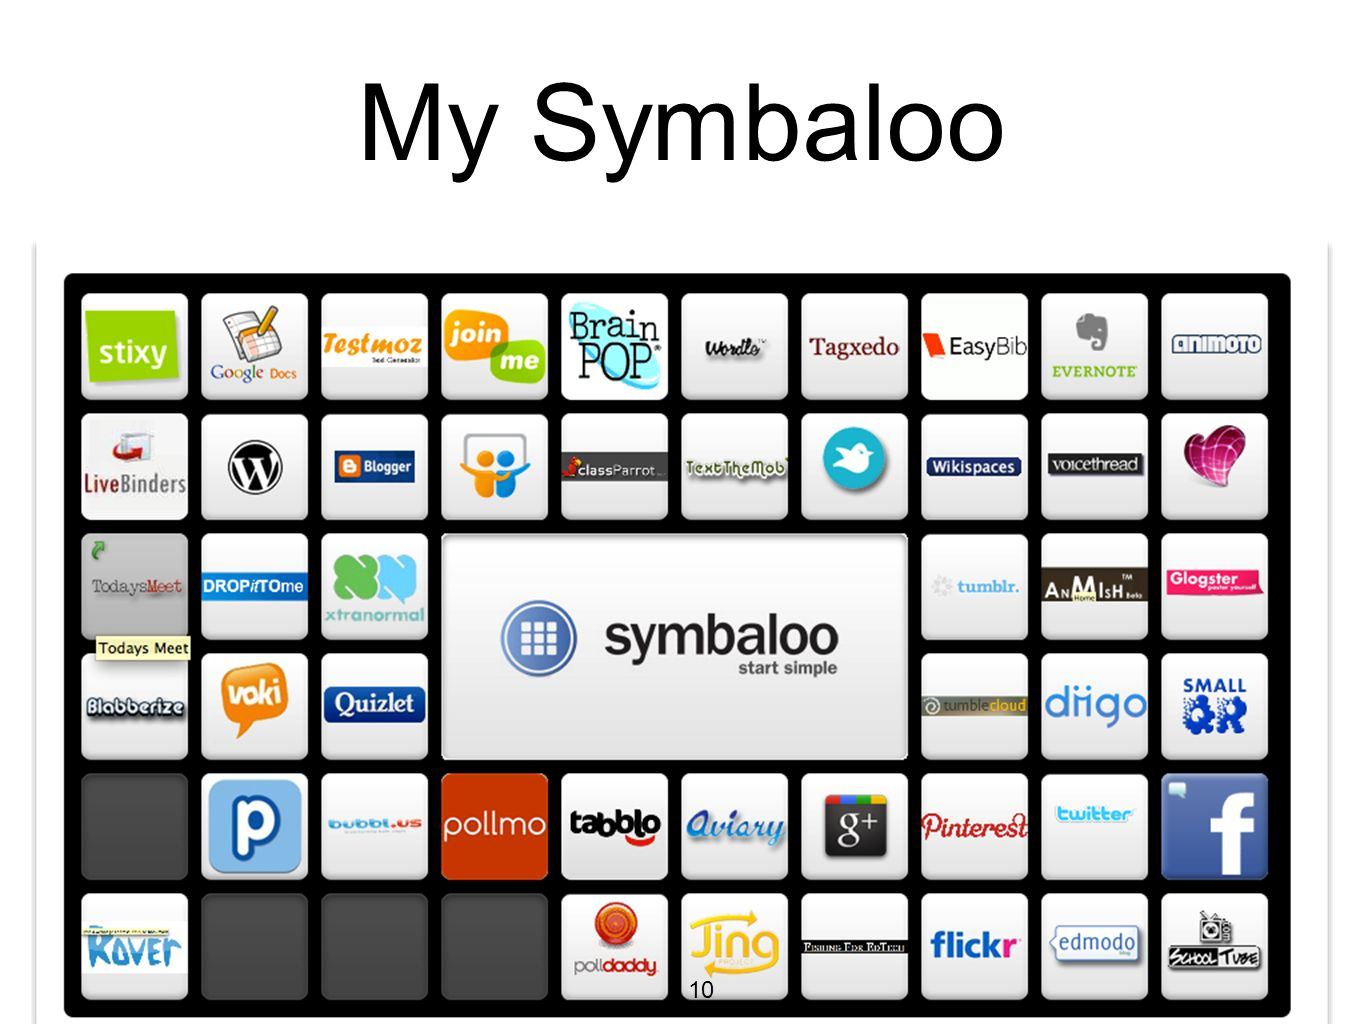 My Symbaloo End of Presentation they will get a link to this. 10